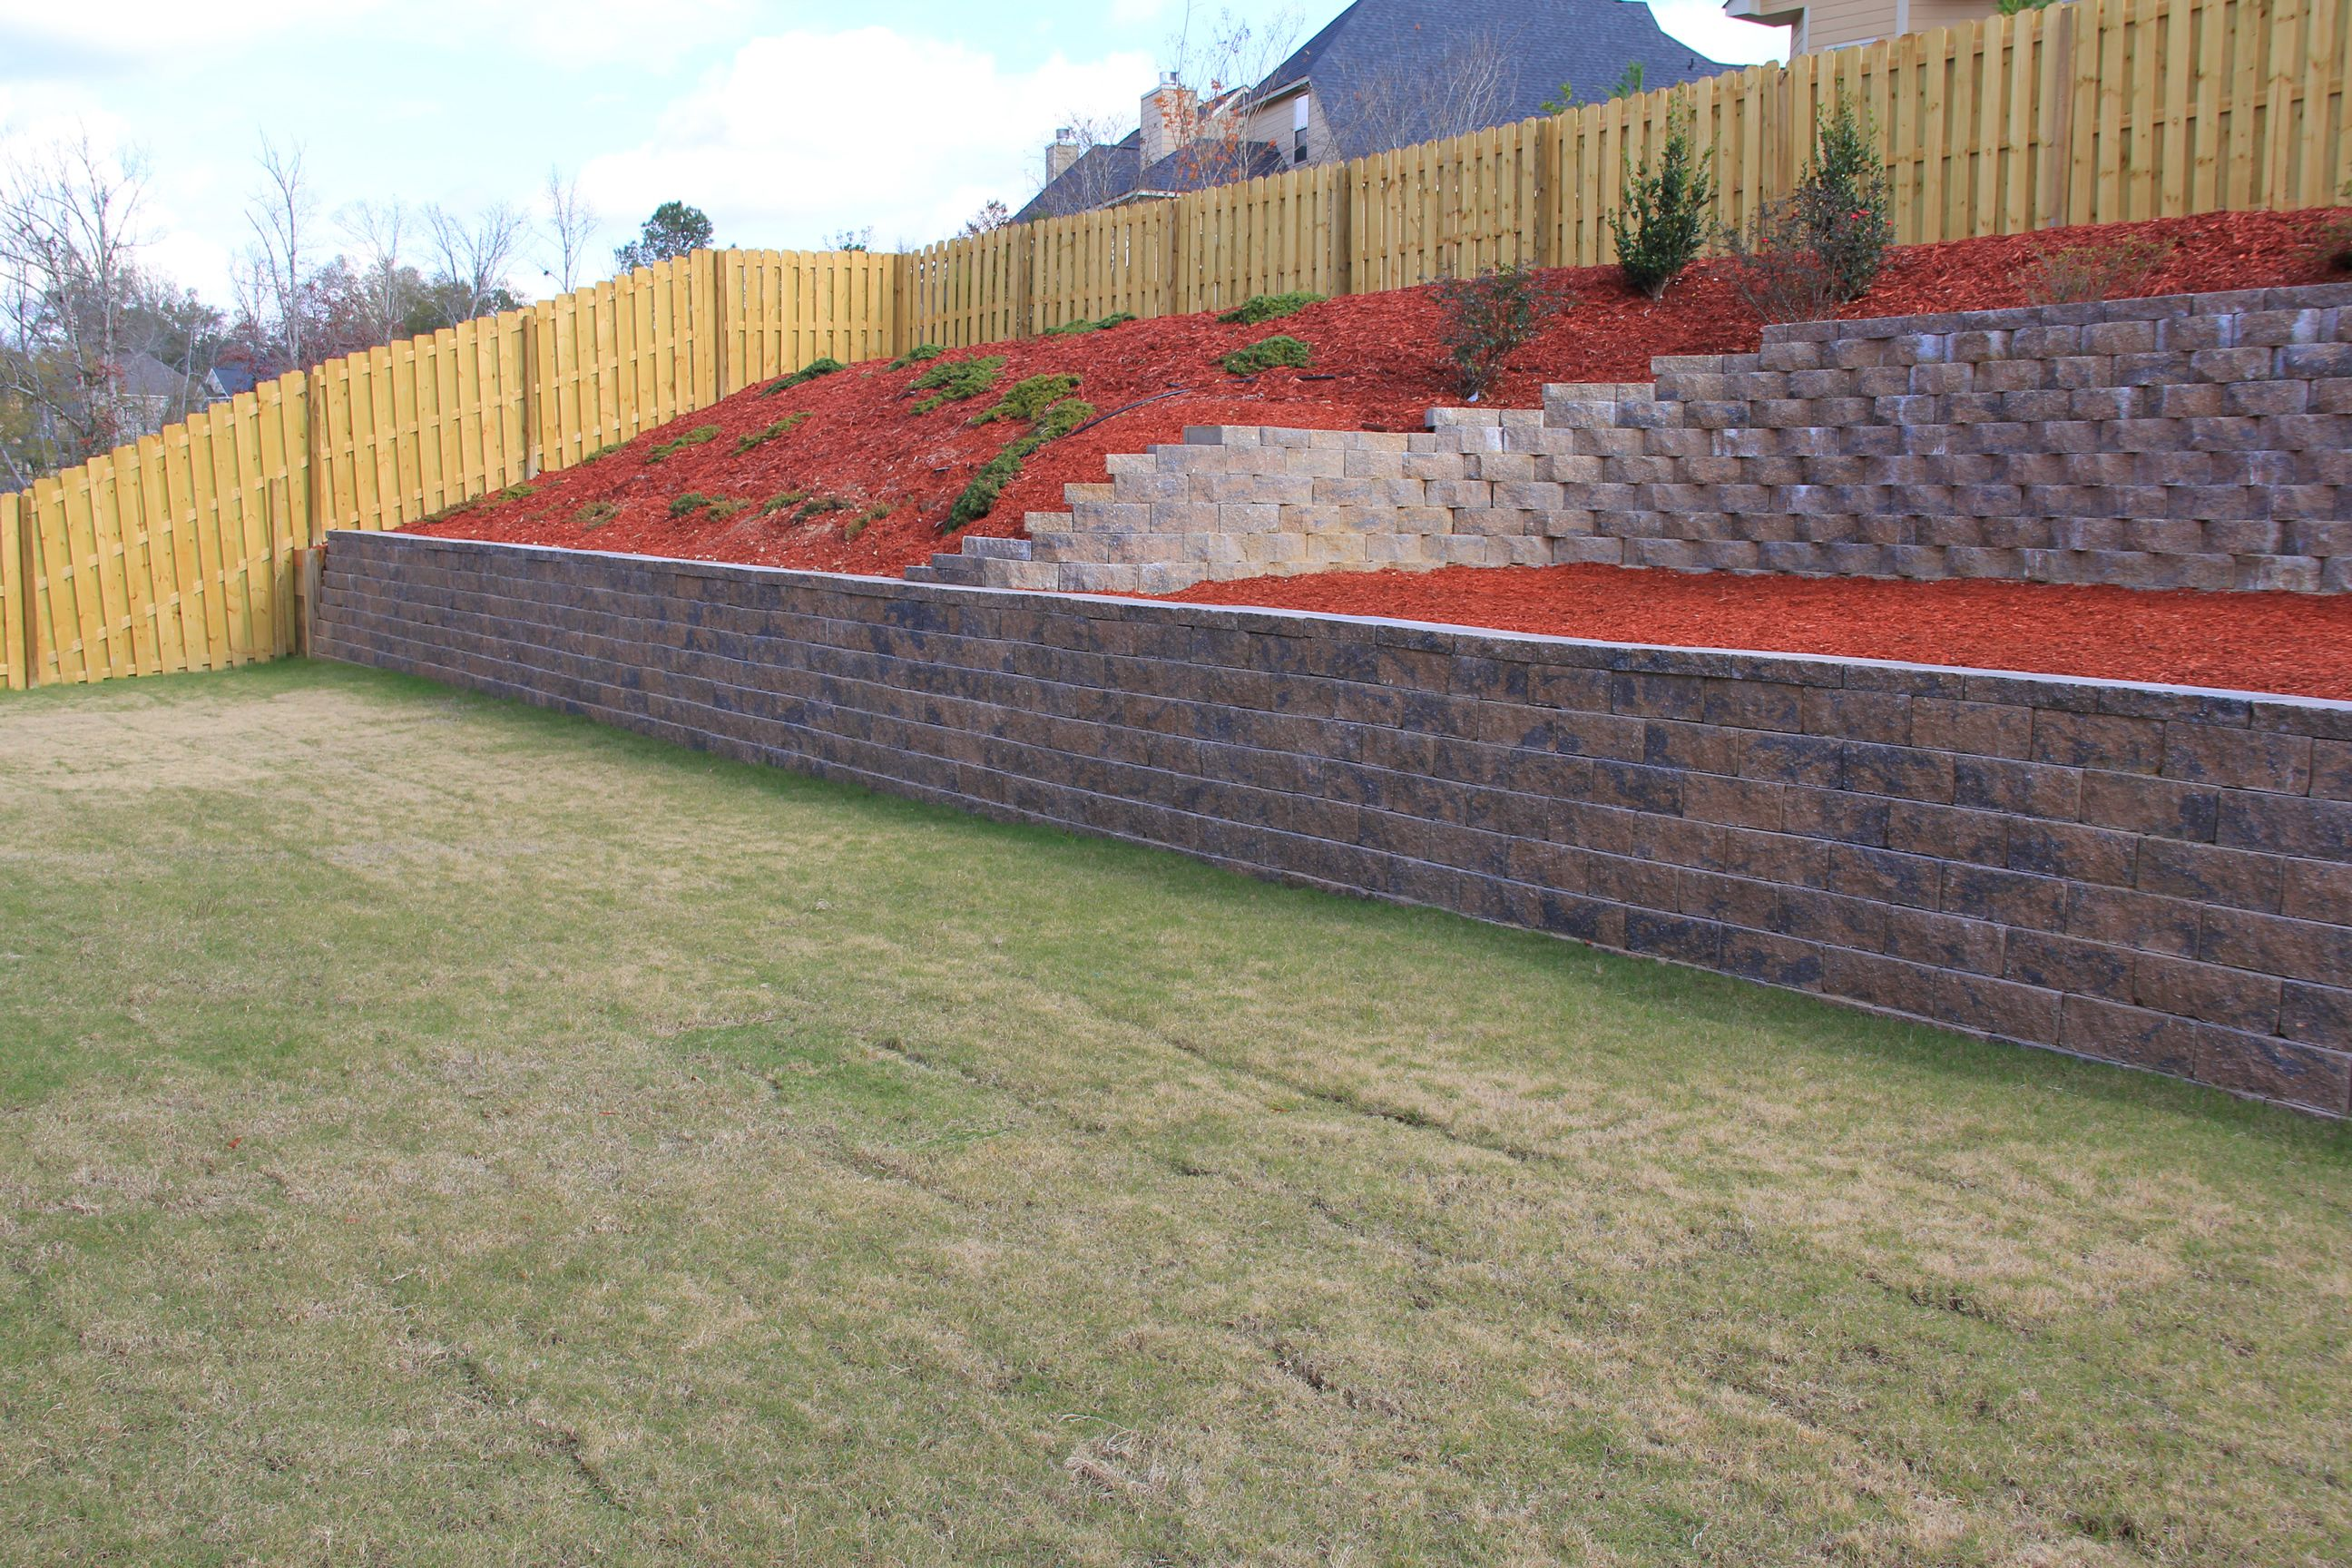 Retaining Wall Landscaping Lawn Care And Retaining Walls Sloped Backyard Landscaping Sloped Backyard Backyard Remodel